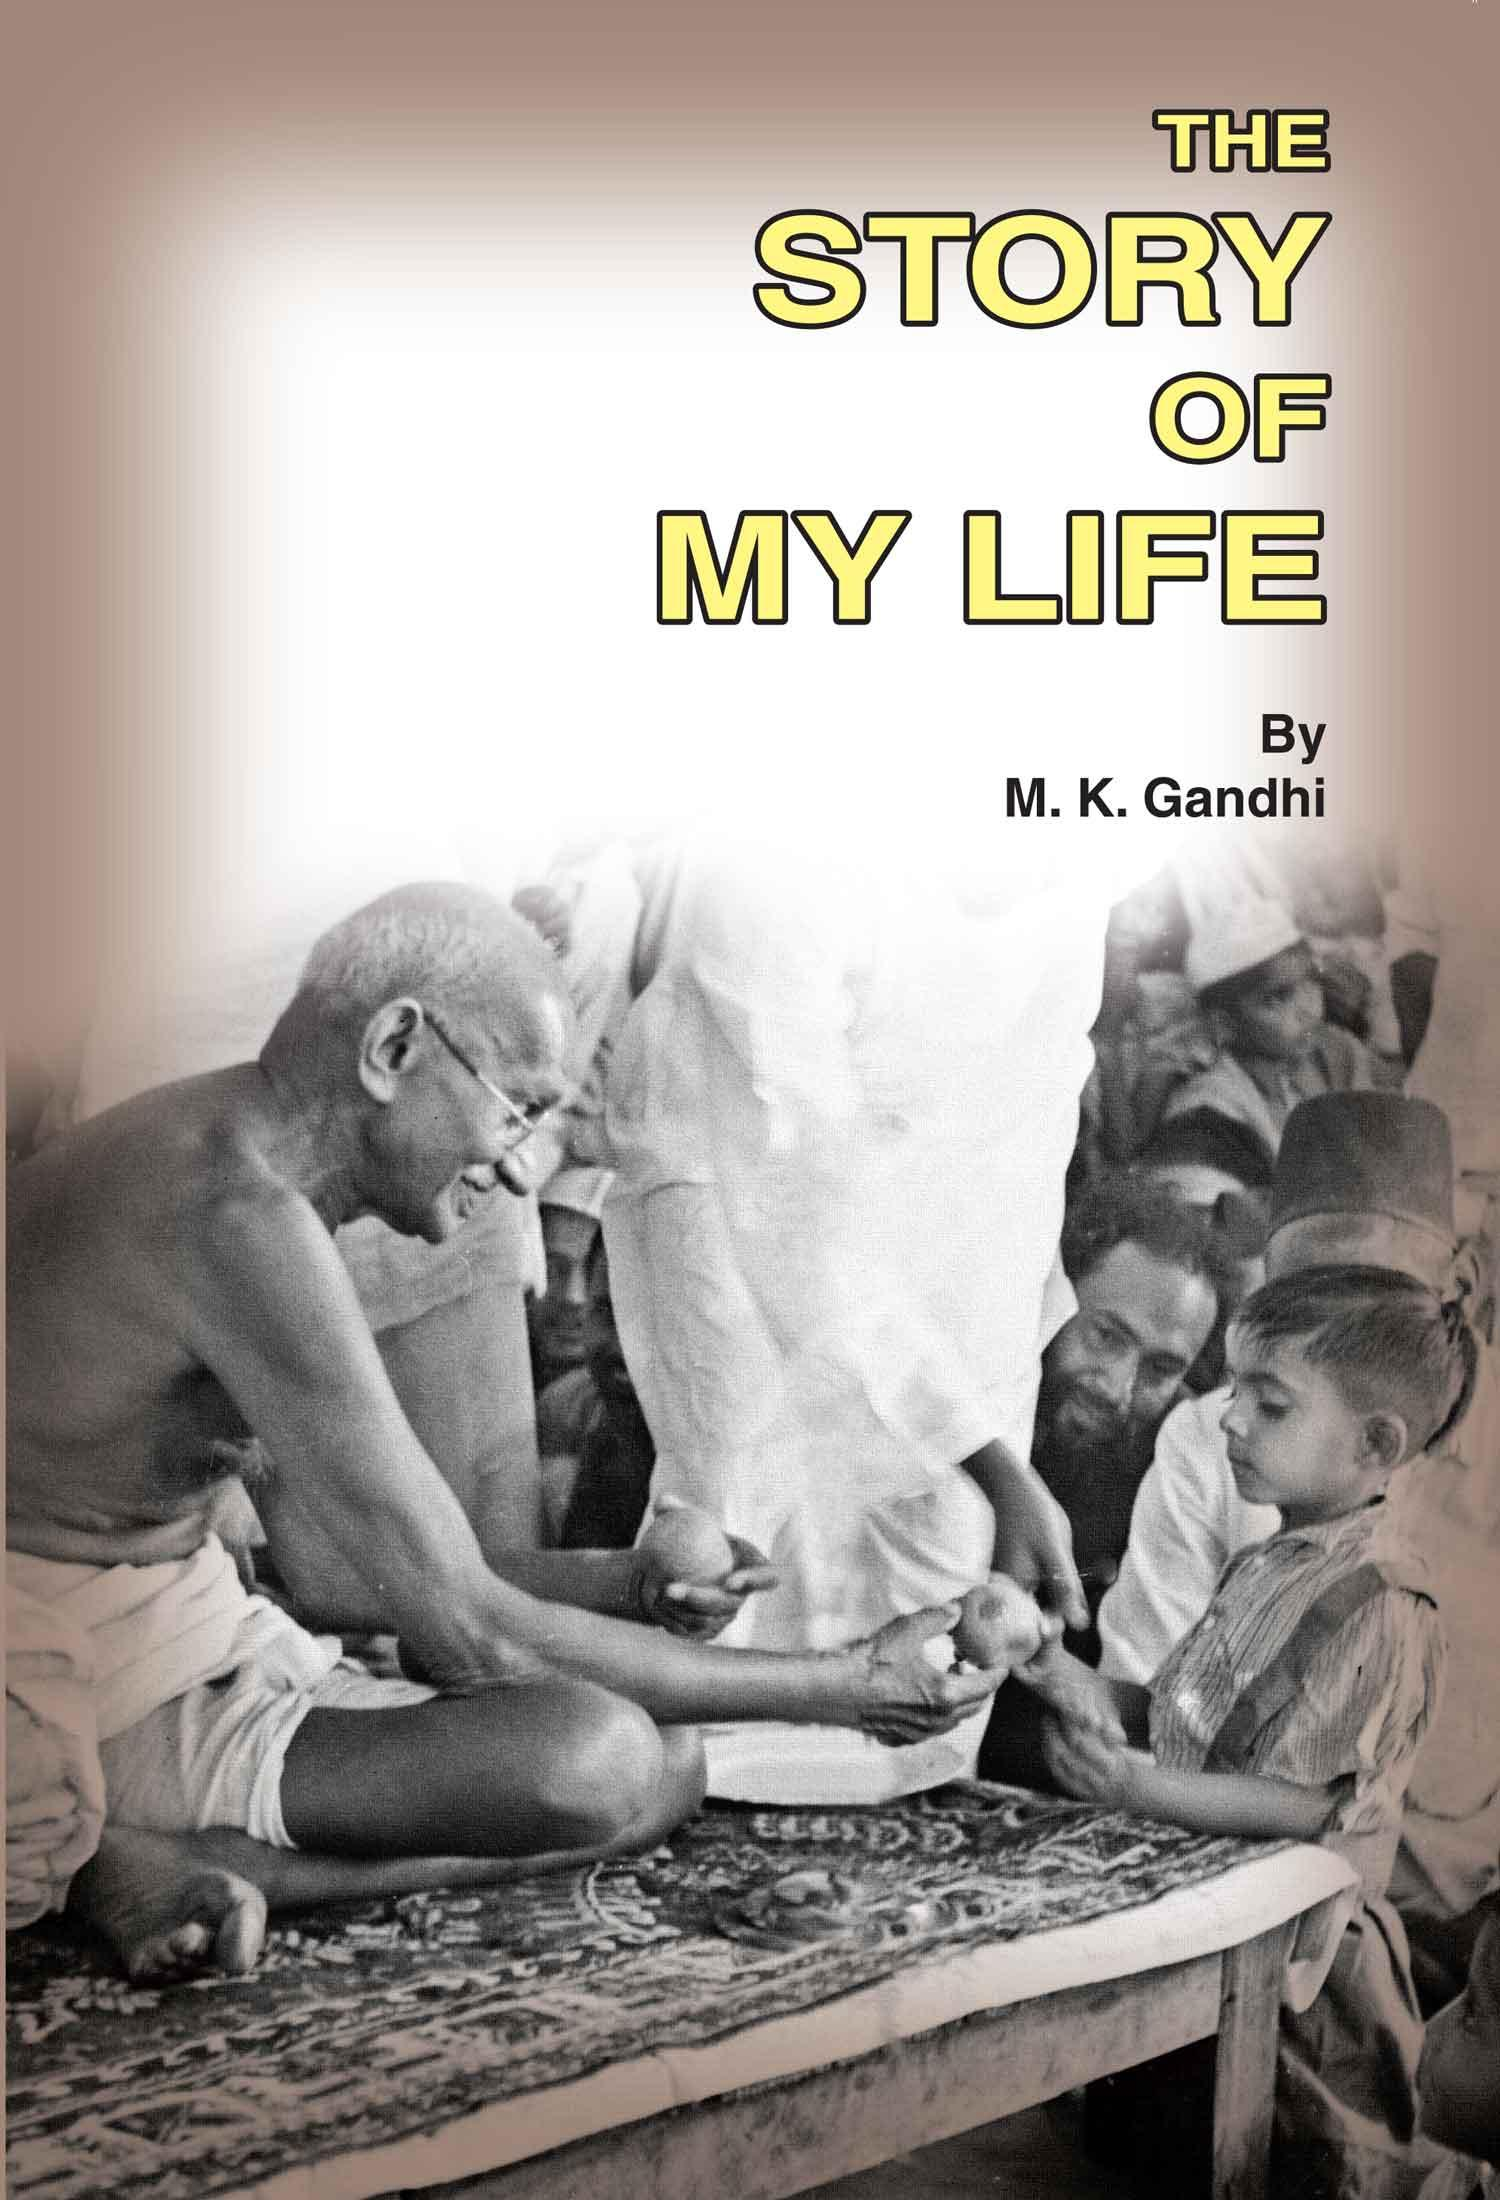 The Story of My Life : Download Complete Ebook for Gandhi Peace Exam